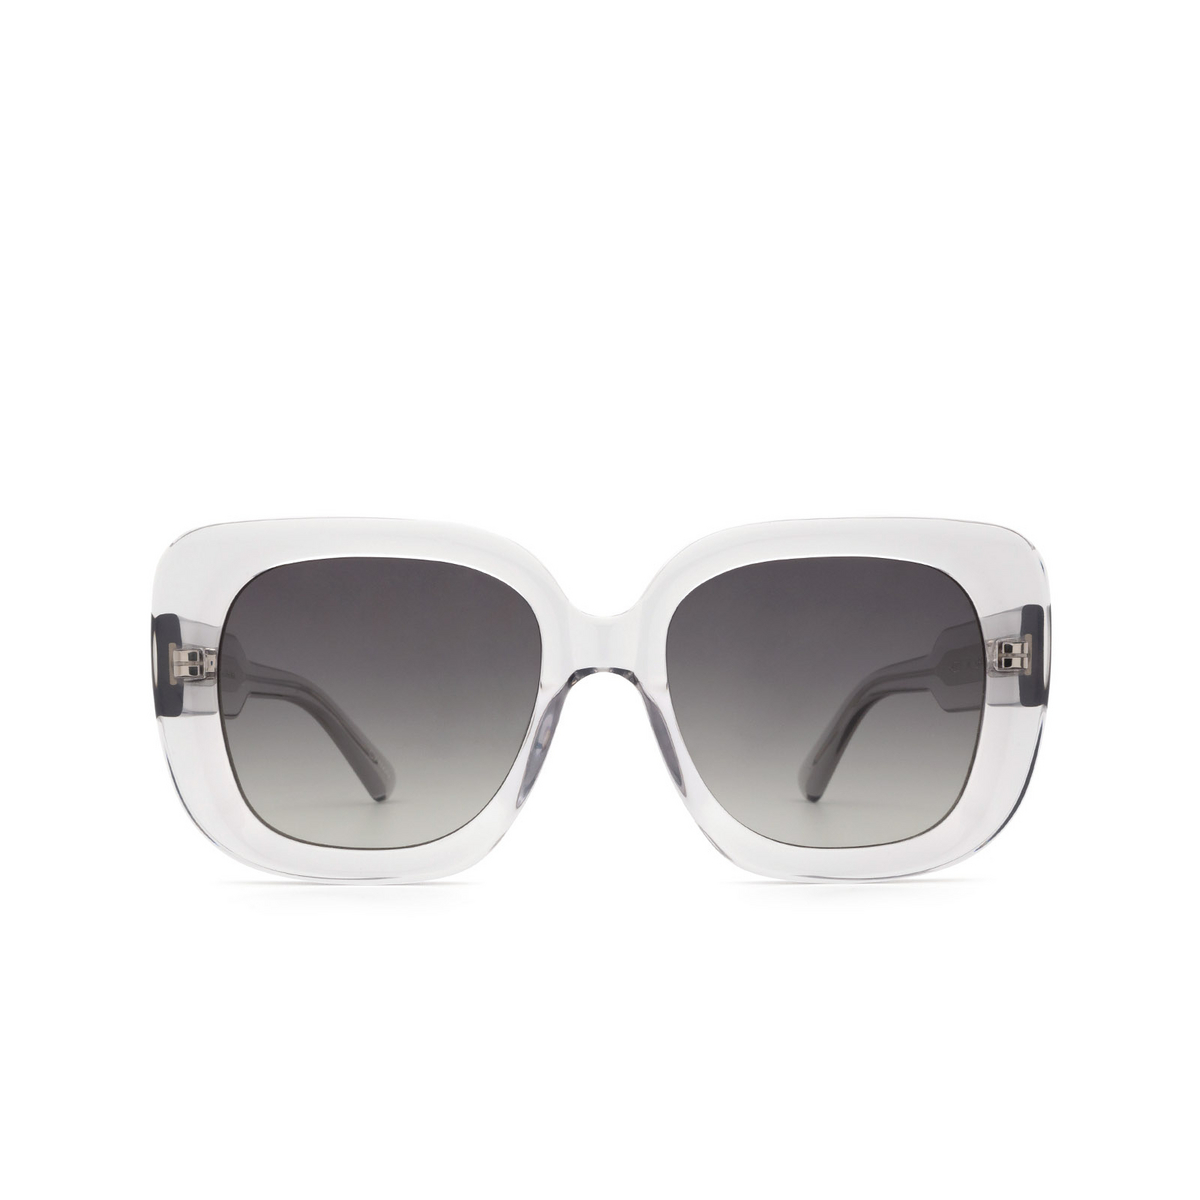 Chimi® Square Sunglasses: 10 color Grey - front view.